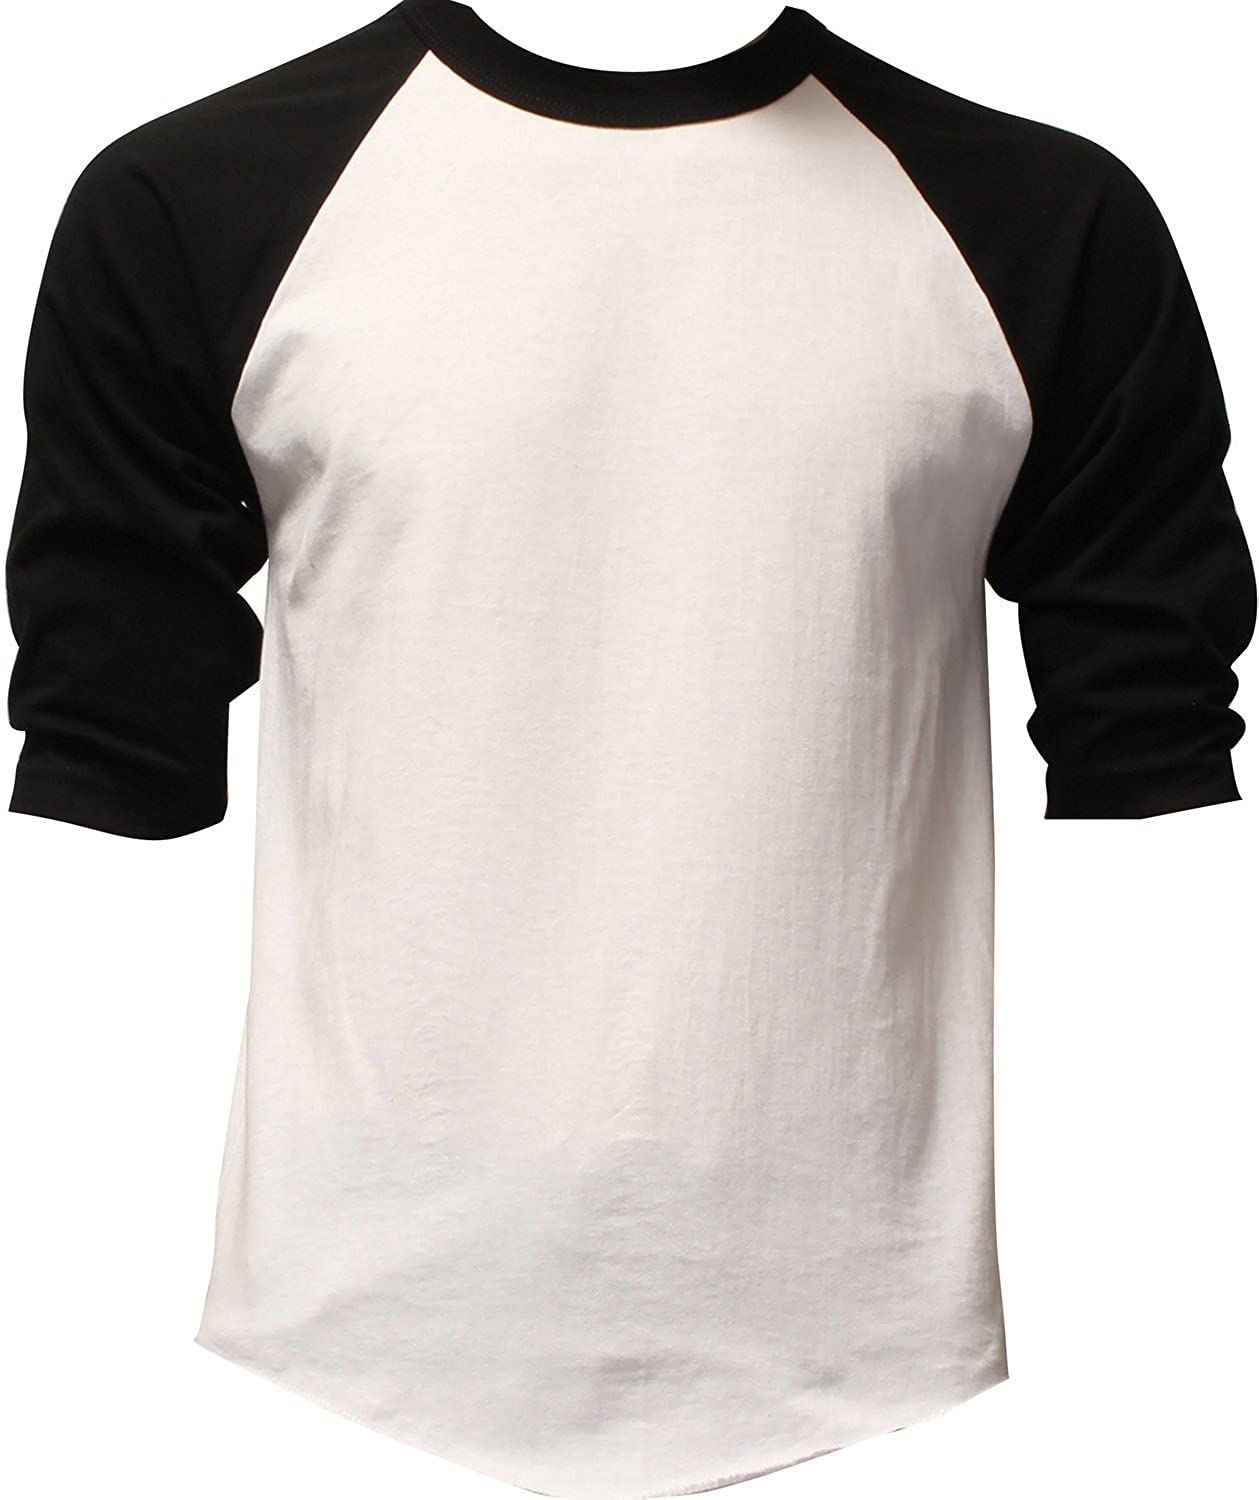 Find great deals on eBay for baseball tees. Shop with confidence.